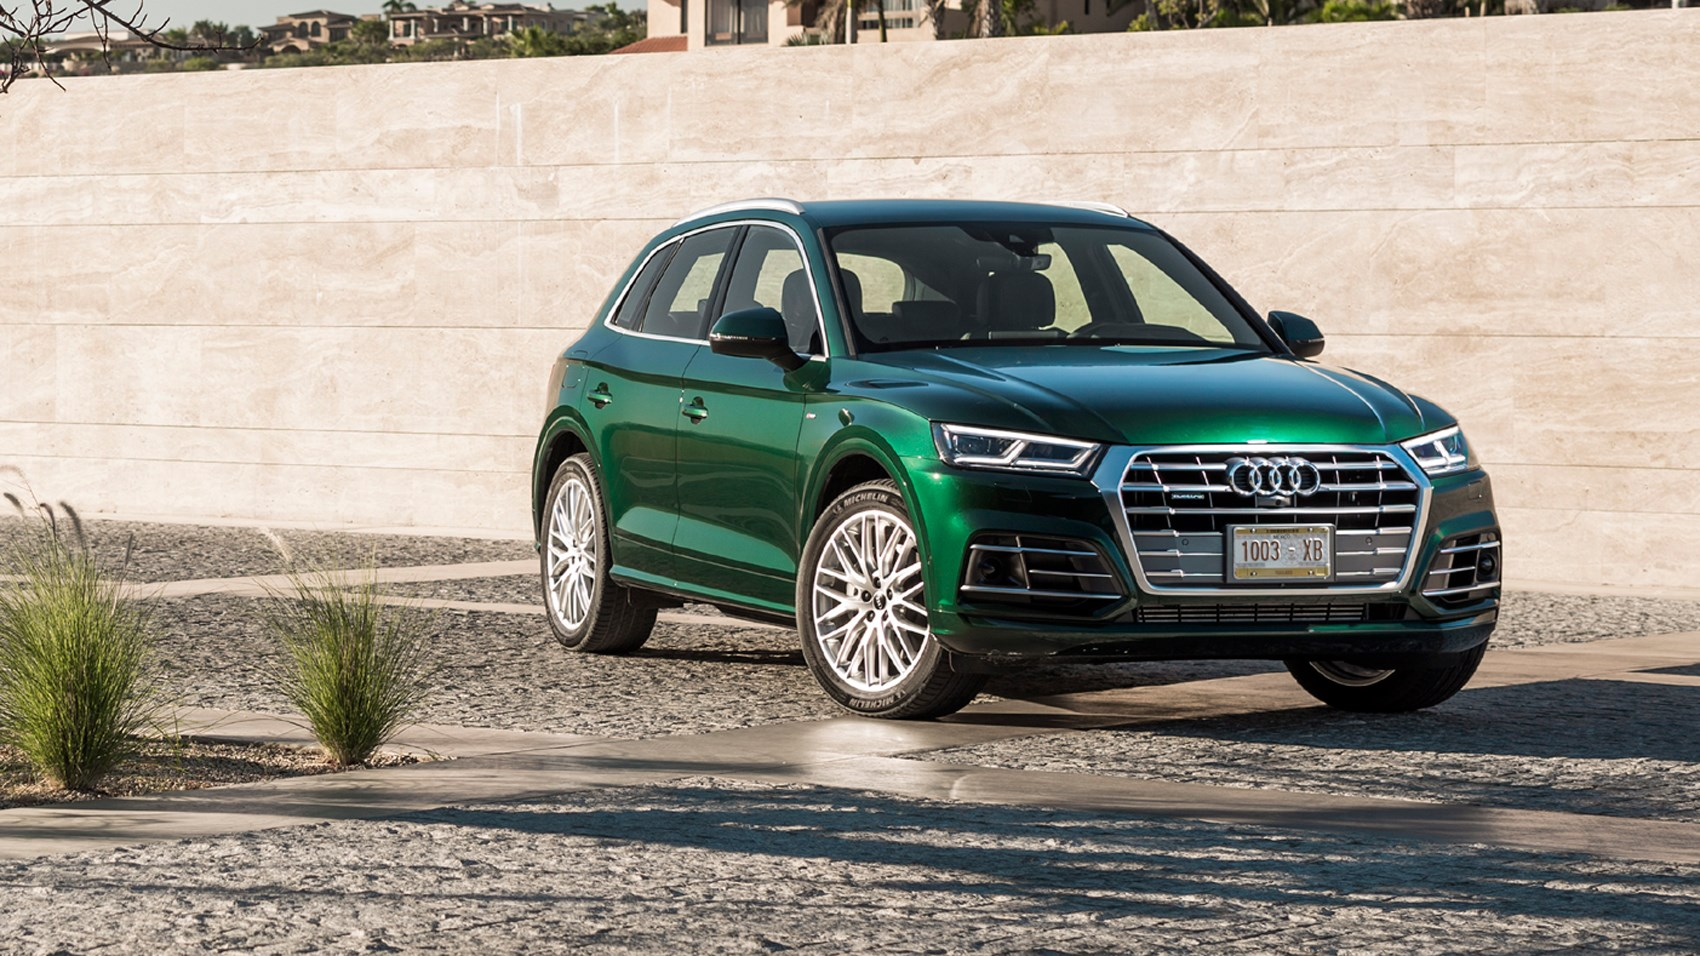 Audi Q5 Lease >> Audi Q5 S Line 2.0 TFSI (2017) review | CAR Magazine